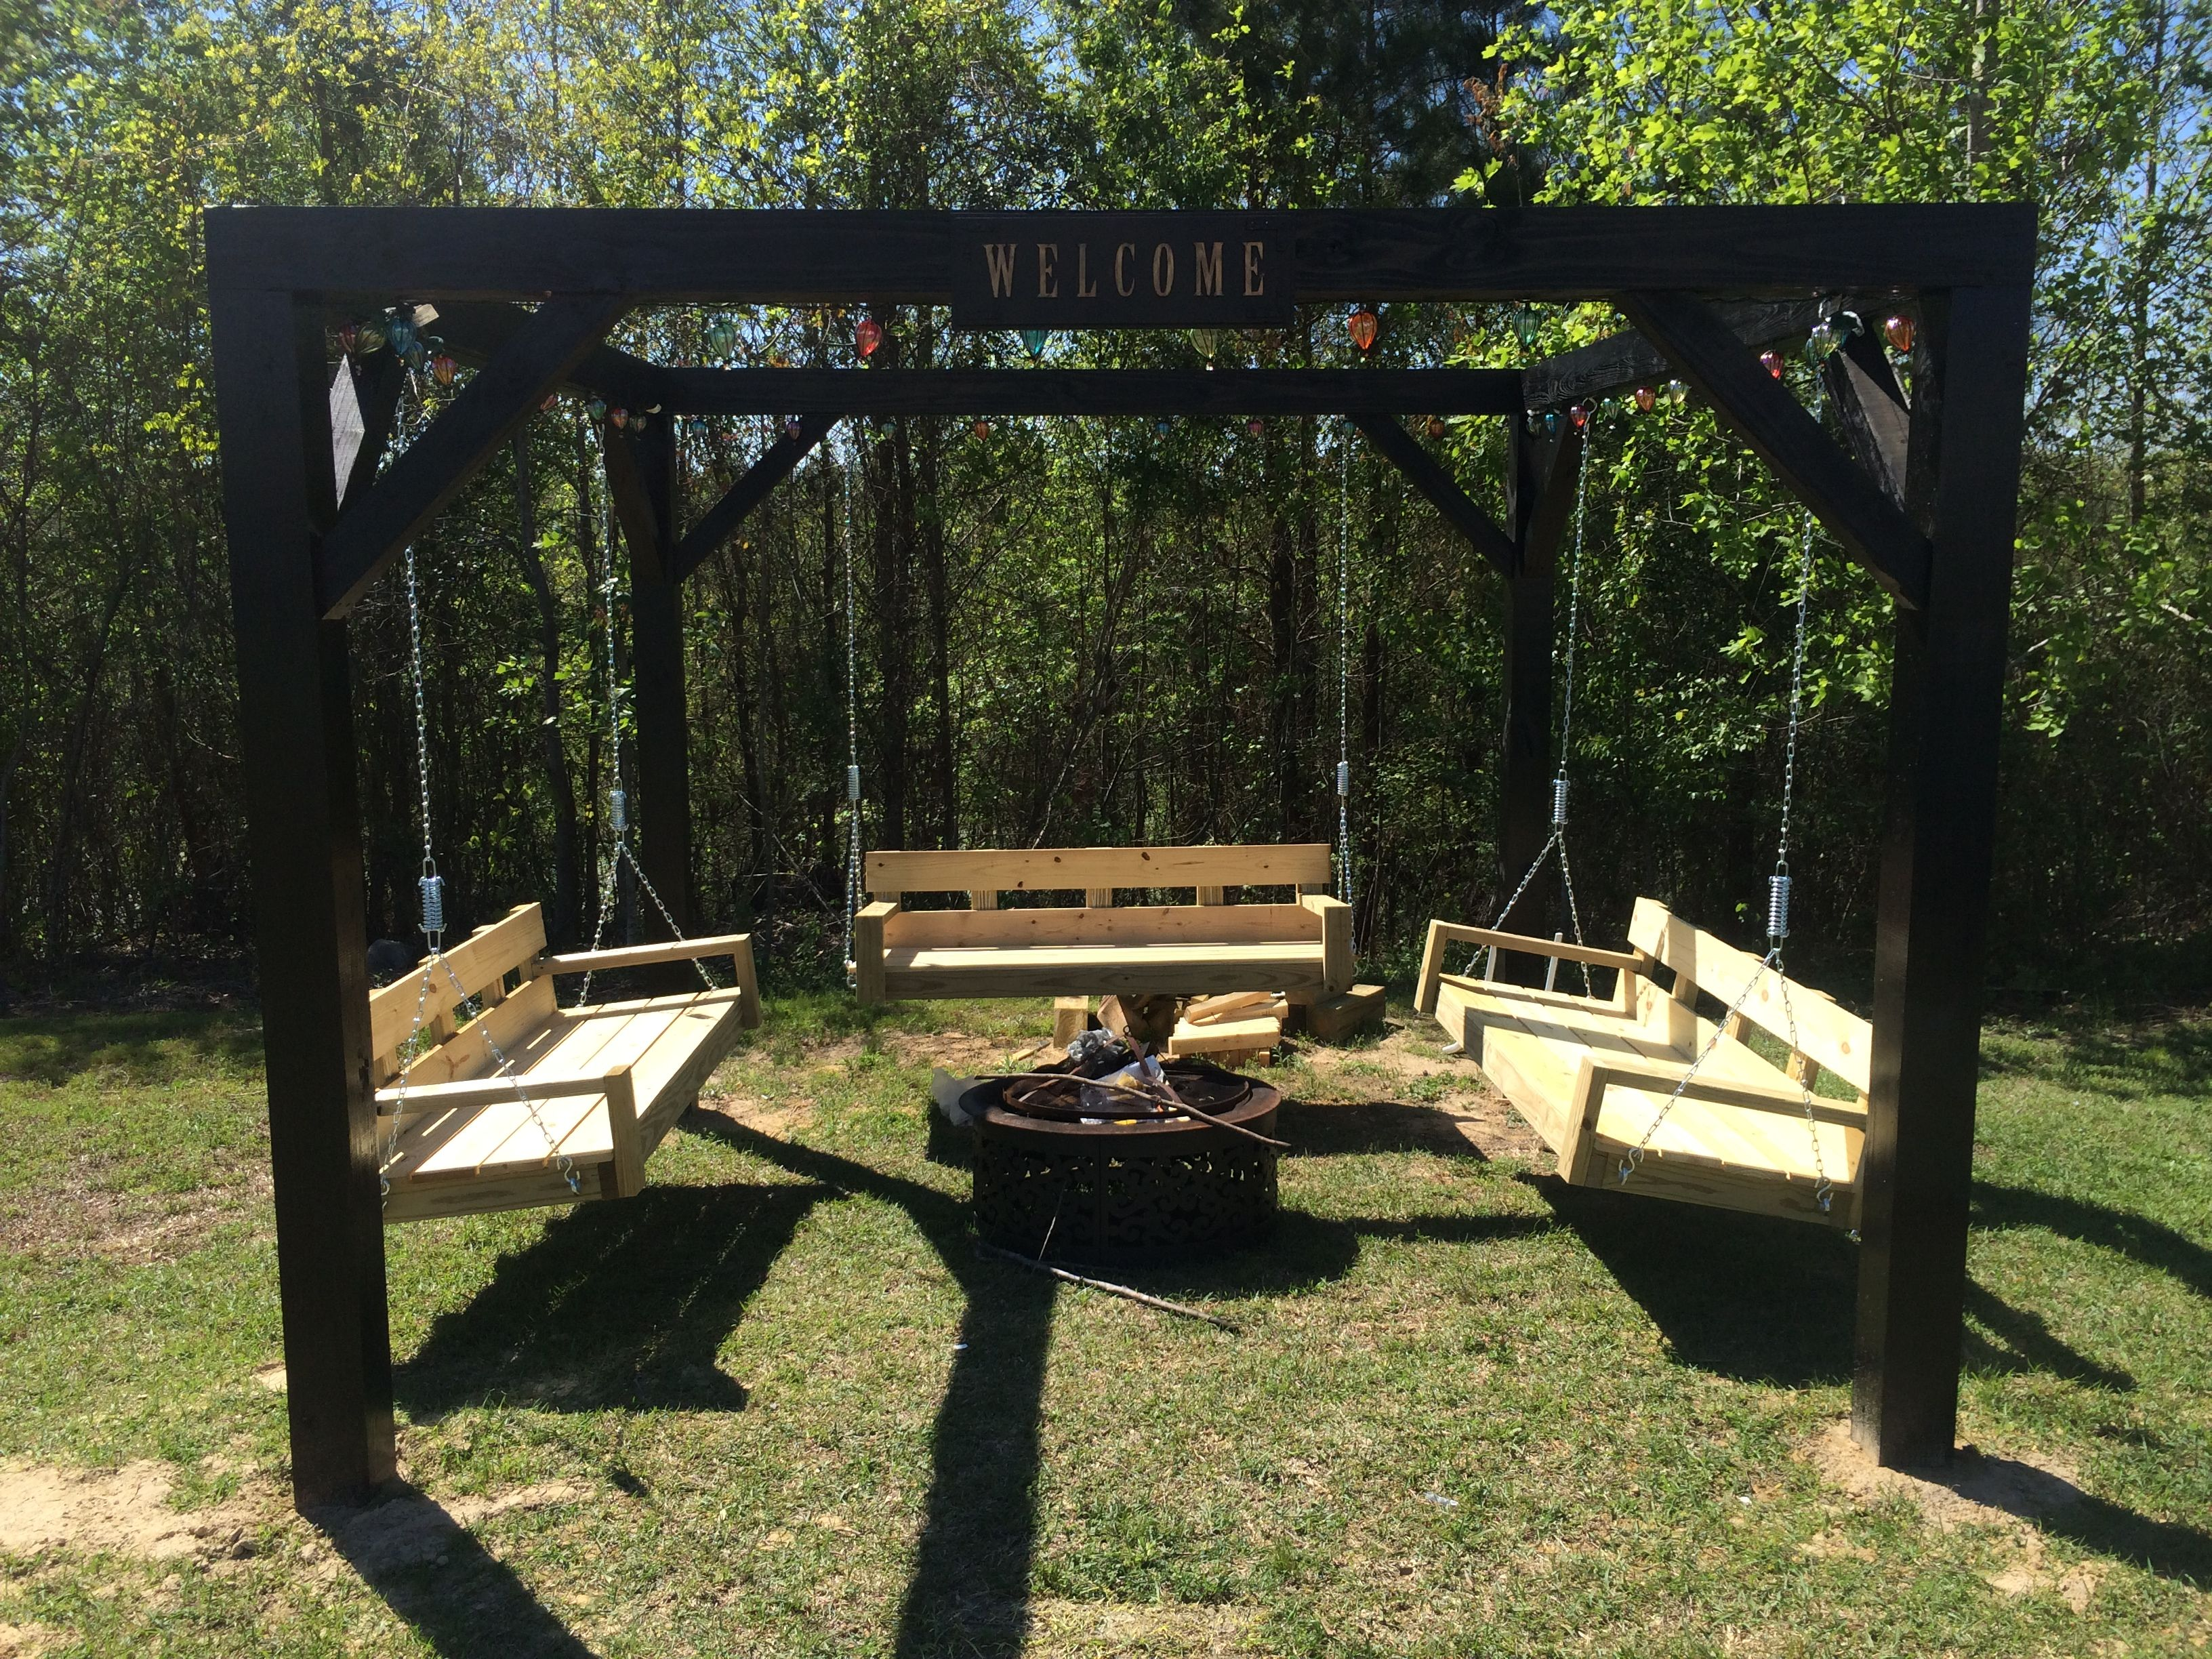 31548443051397679696g 32642448 pixels pergola pinterest isnt this a great place to hangout with friends and family take a tour of this diy fire pit swing set by viewing the full album at theownerbuilderne solutioingenieria Image collections